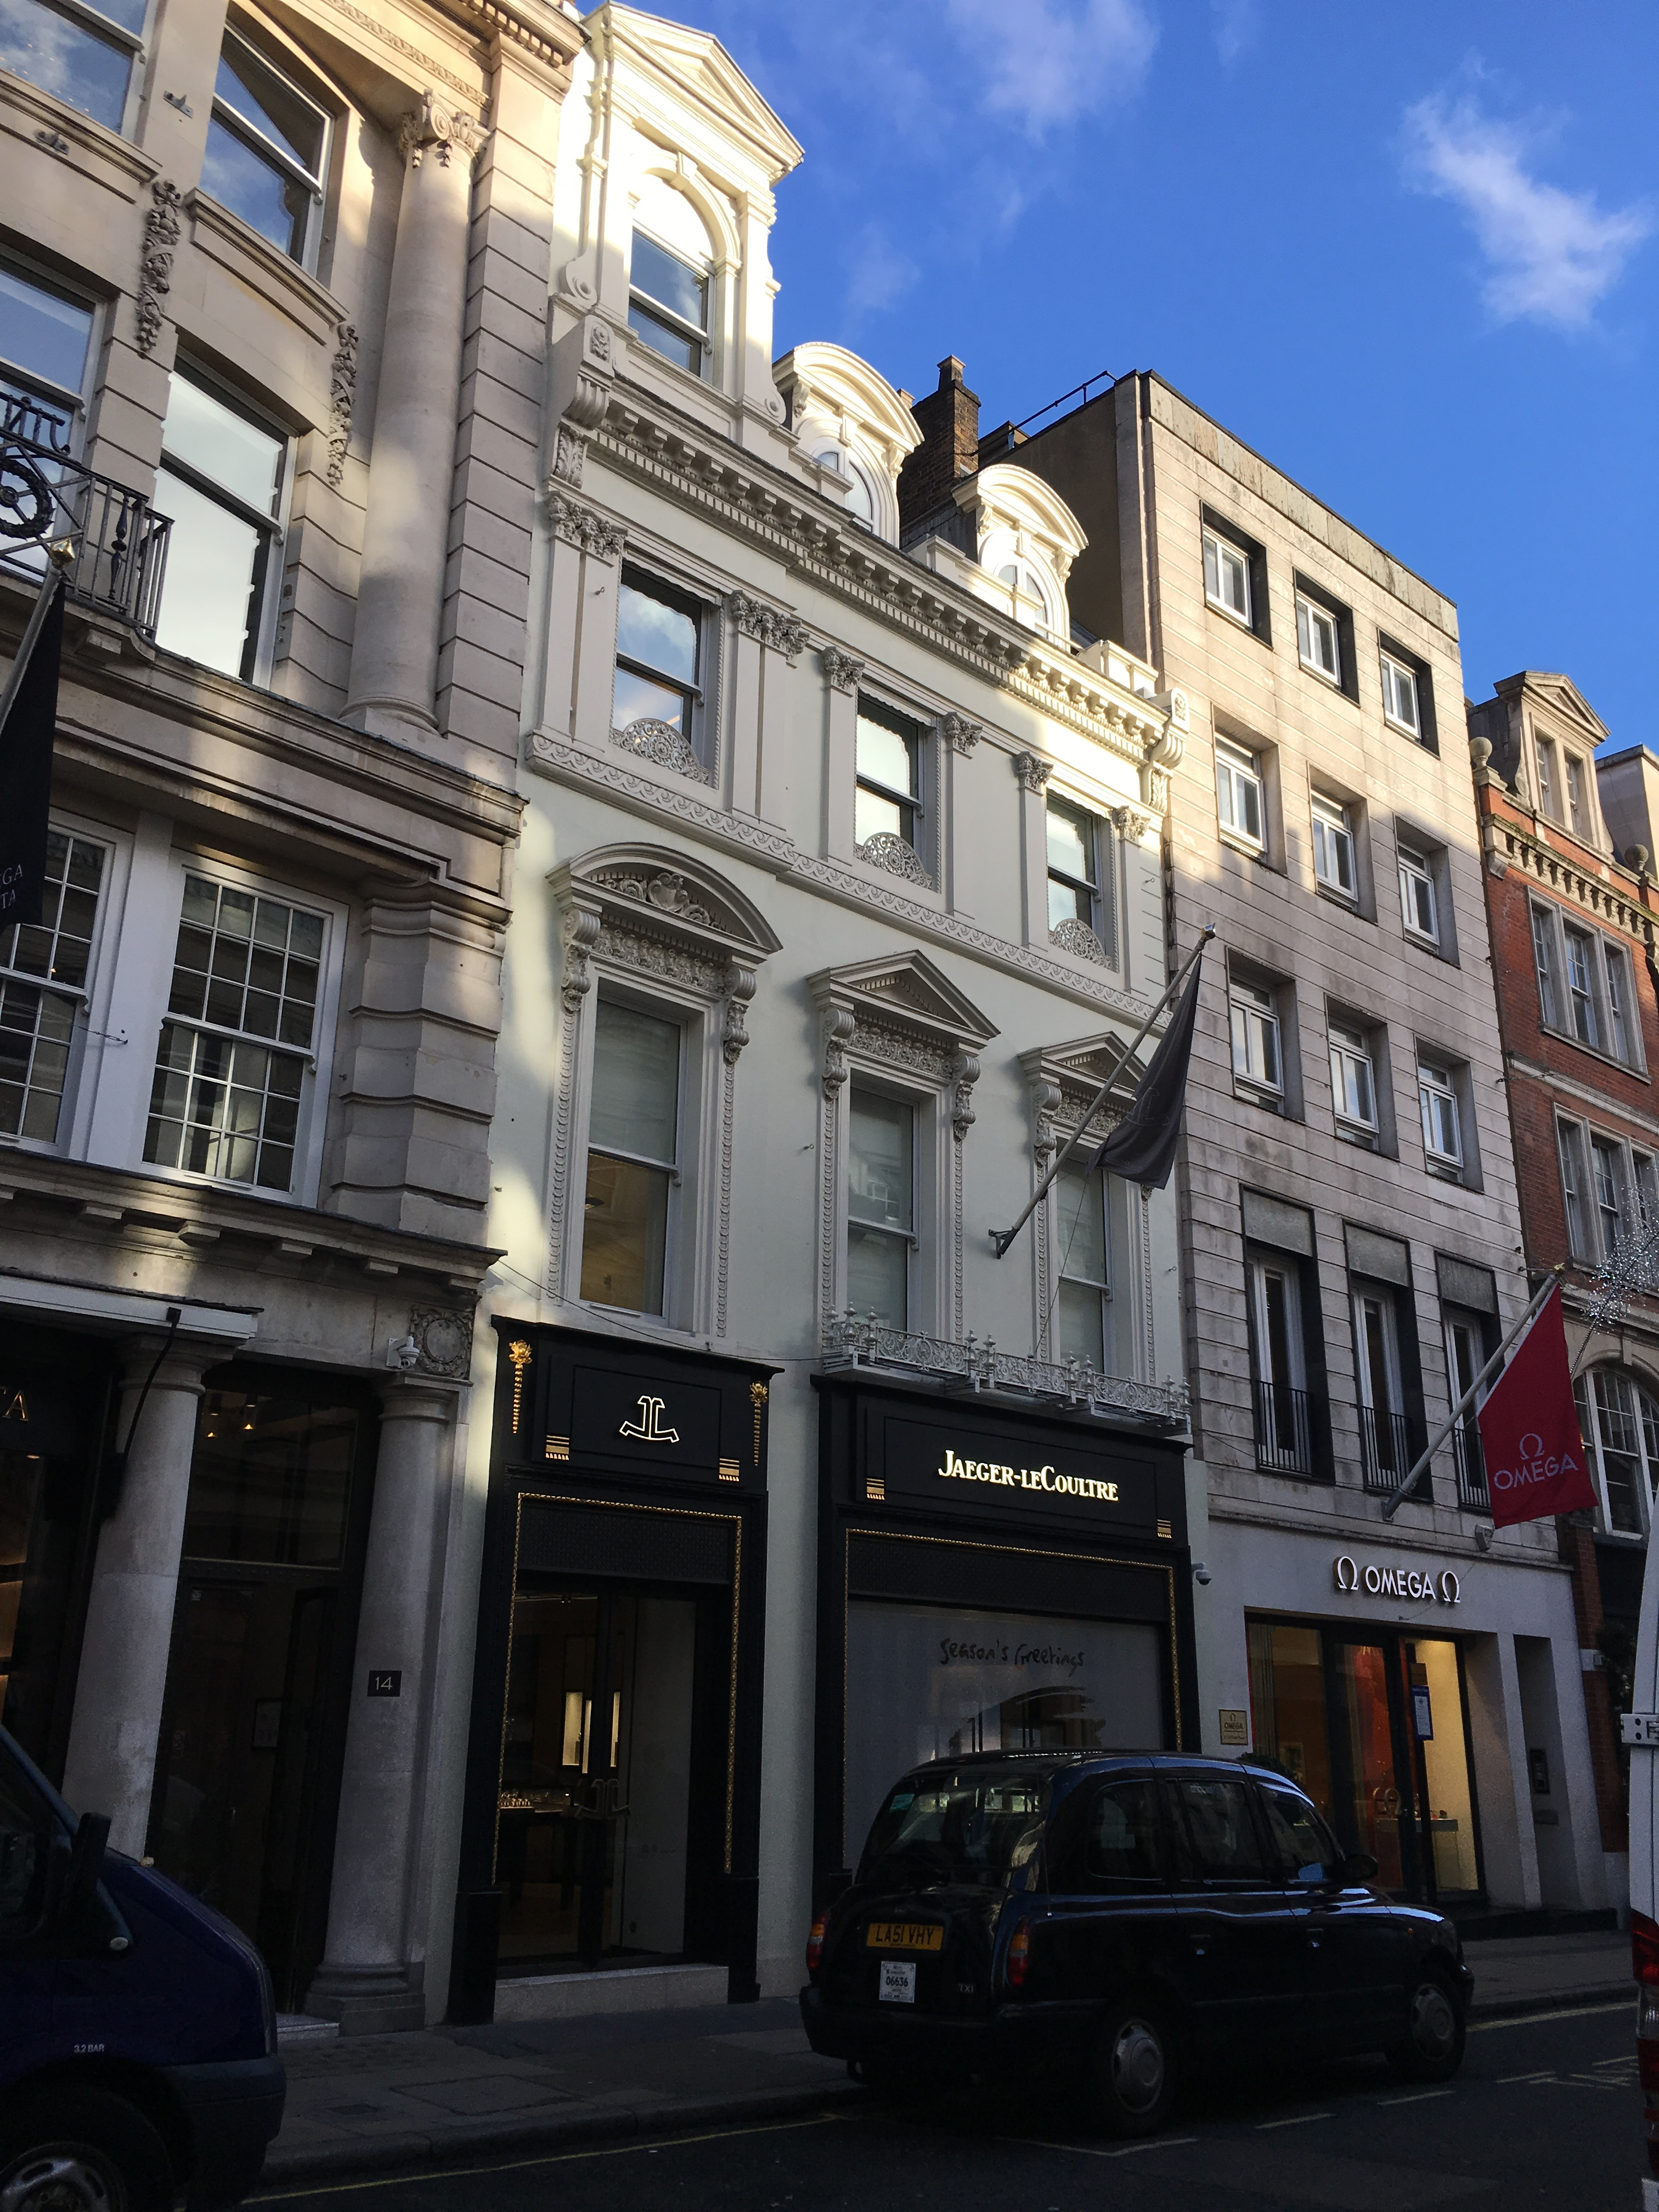 Main photo of 13 Old Bond Street – Jaeger LeCoultre